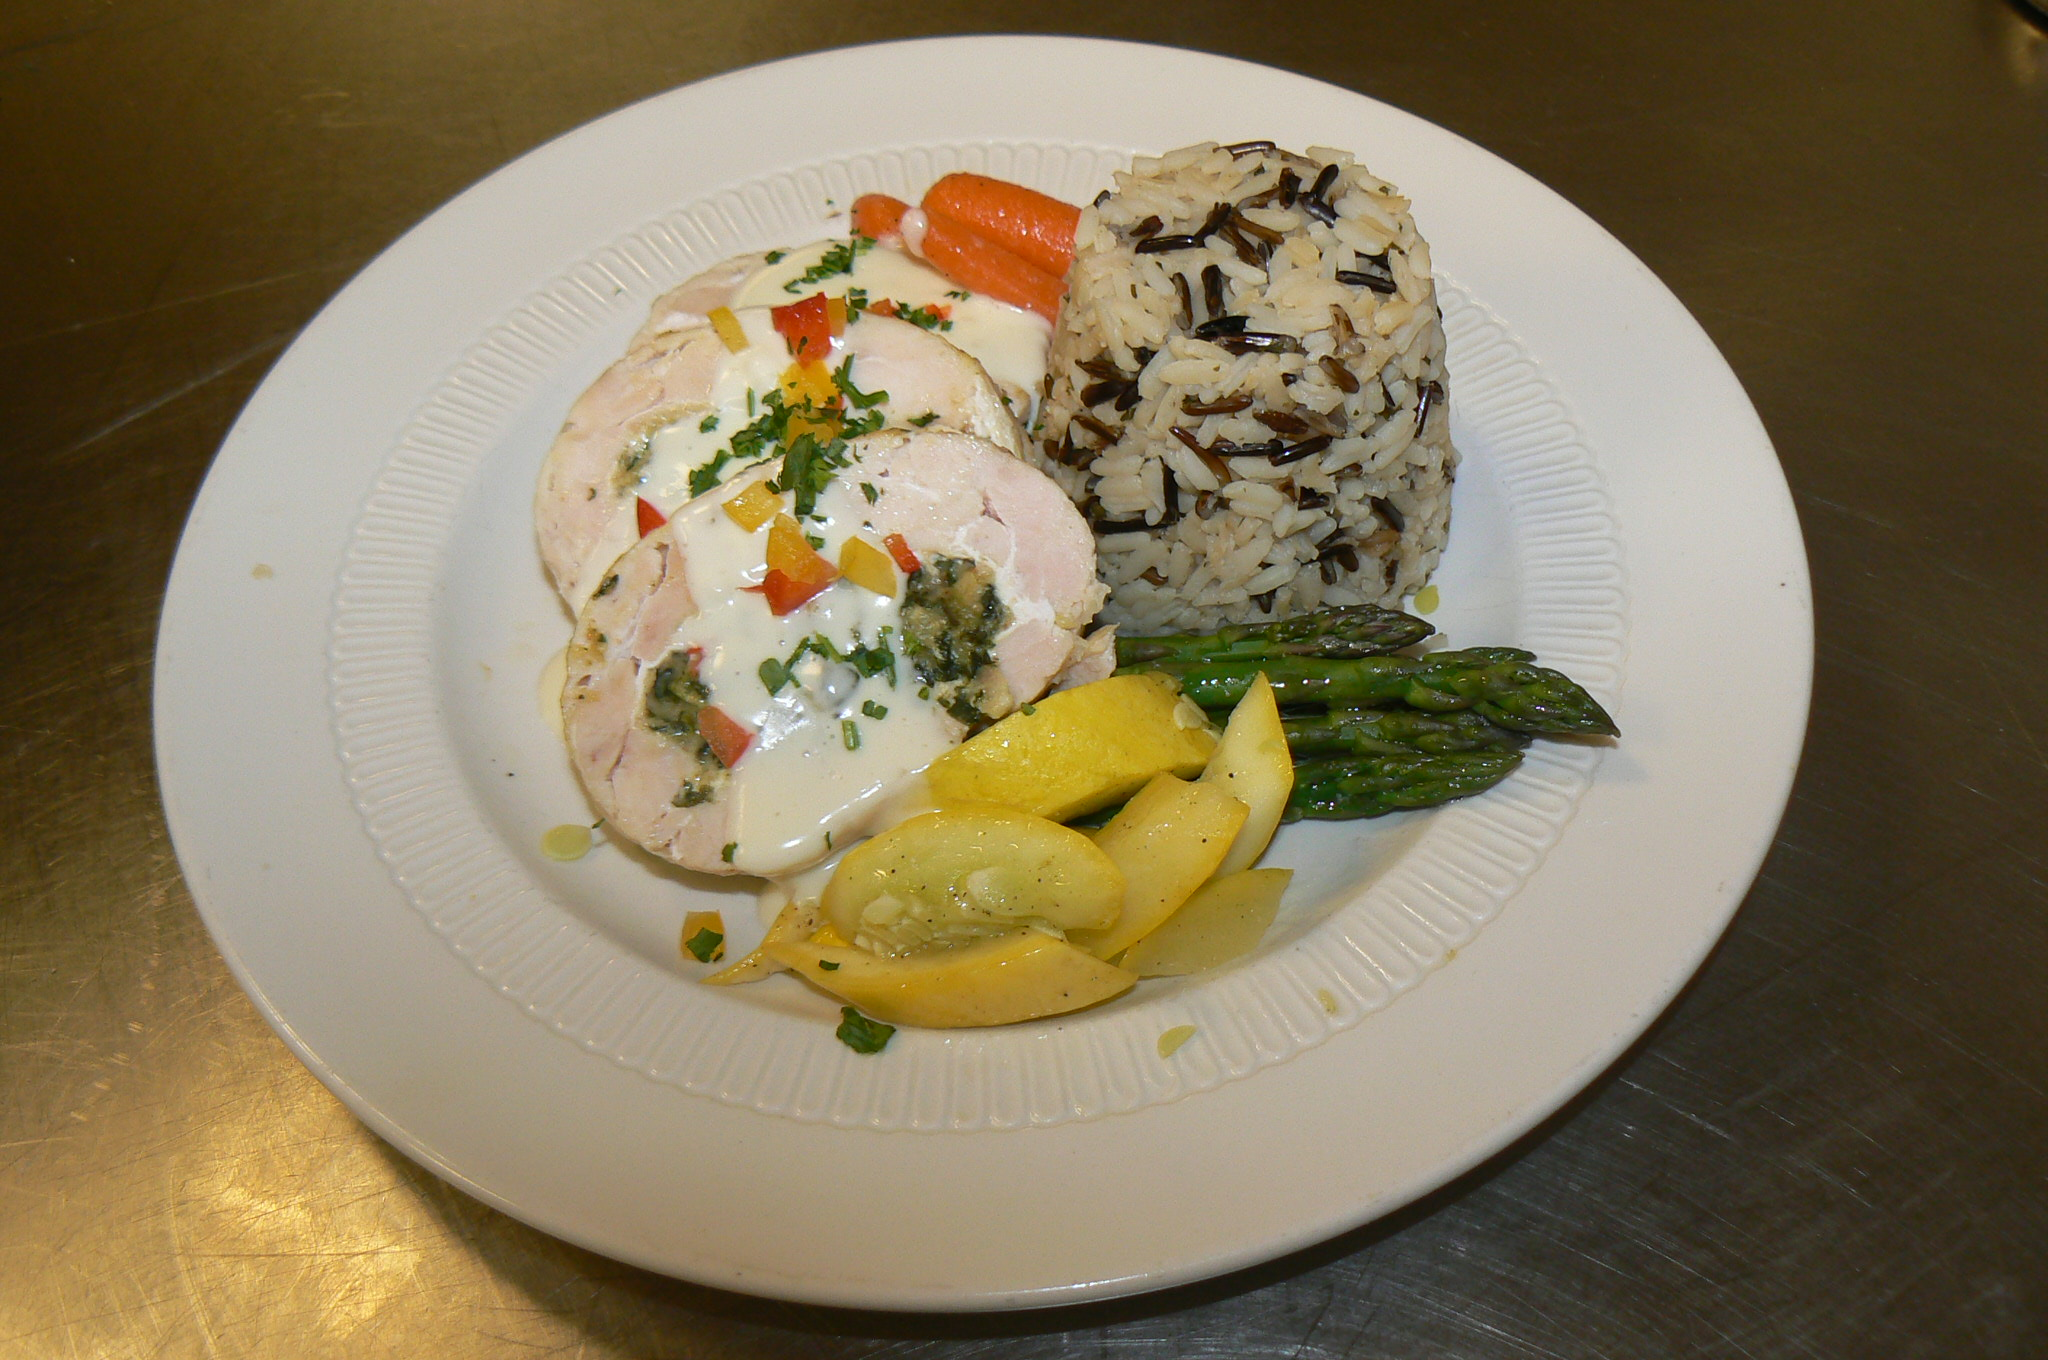 Stuffed chicken picture